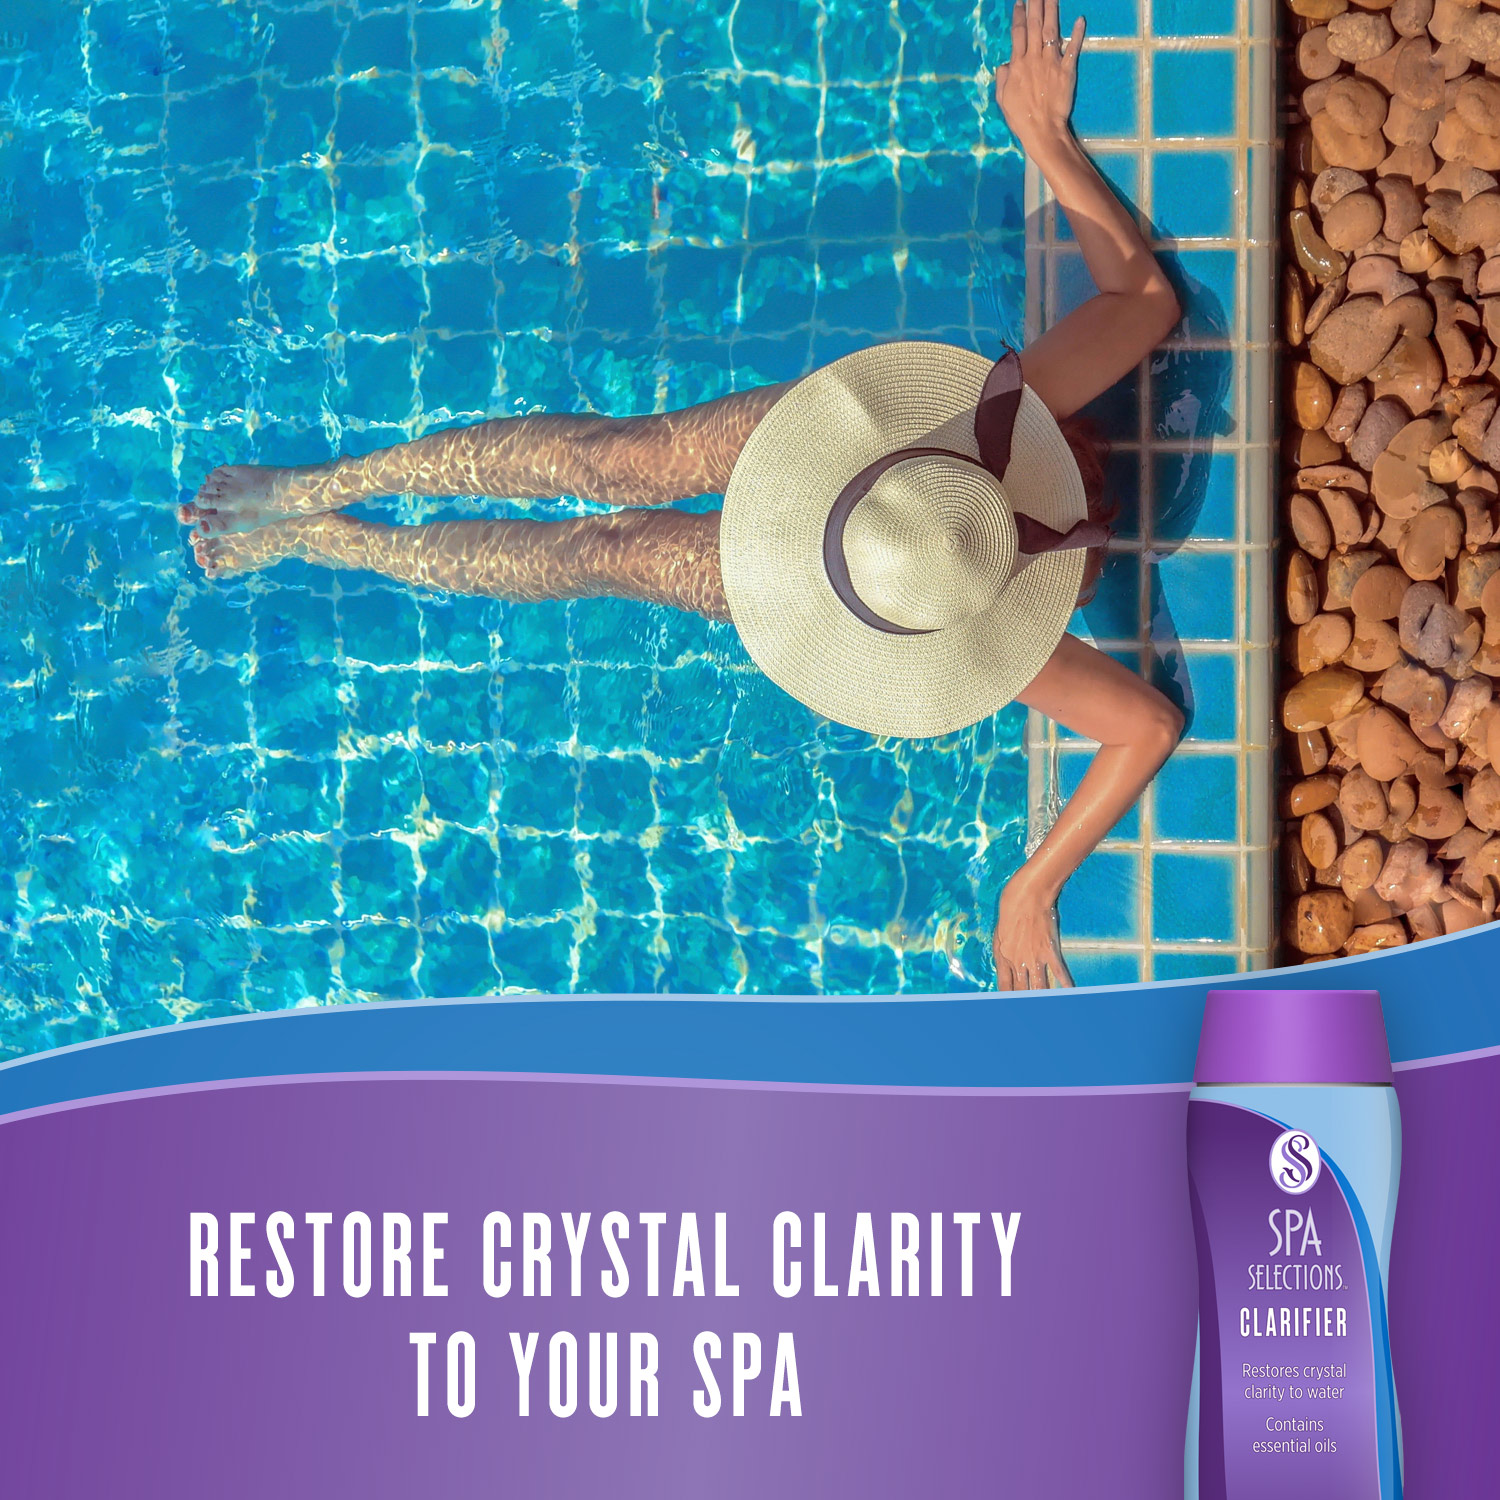 Spa Selections Clarifier restores crystal clarity to your spa. Photo of woman in sun hat enjoying outdoor spa with crystal clear water.